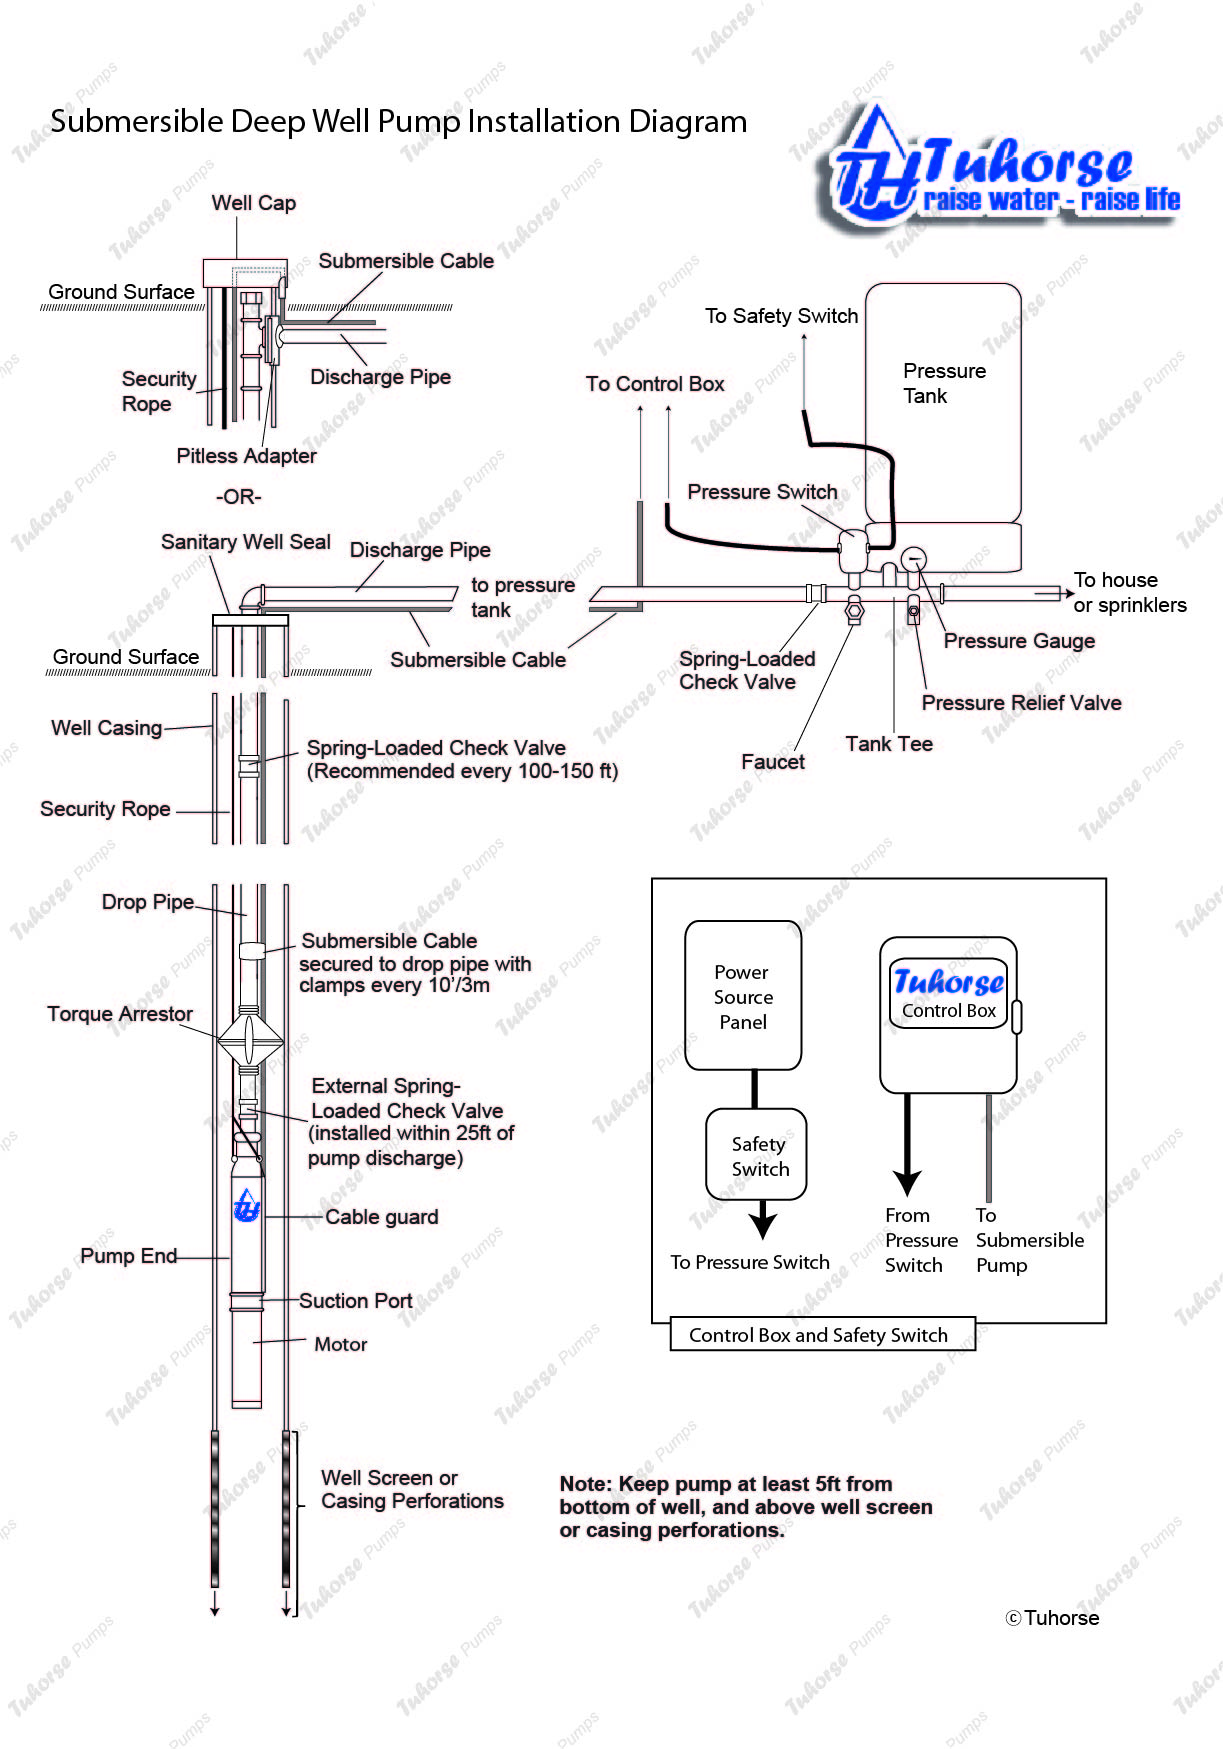 4 wire submersible well pump wiring diagram 2002 chevy truck radio installation